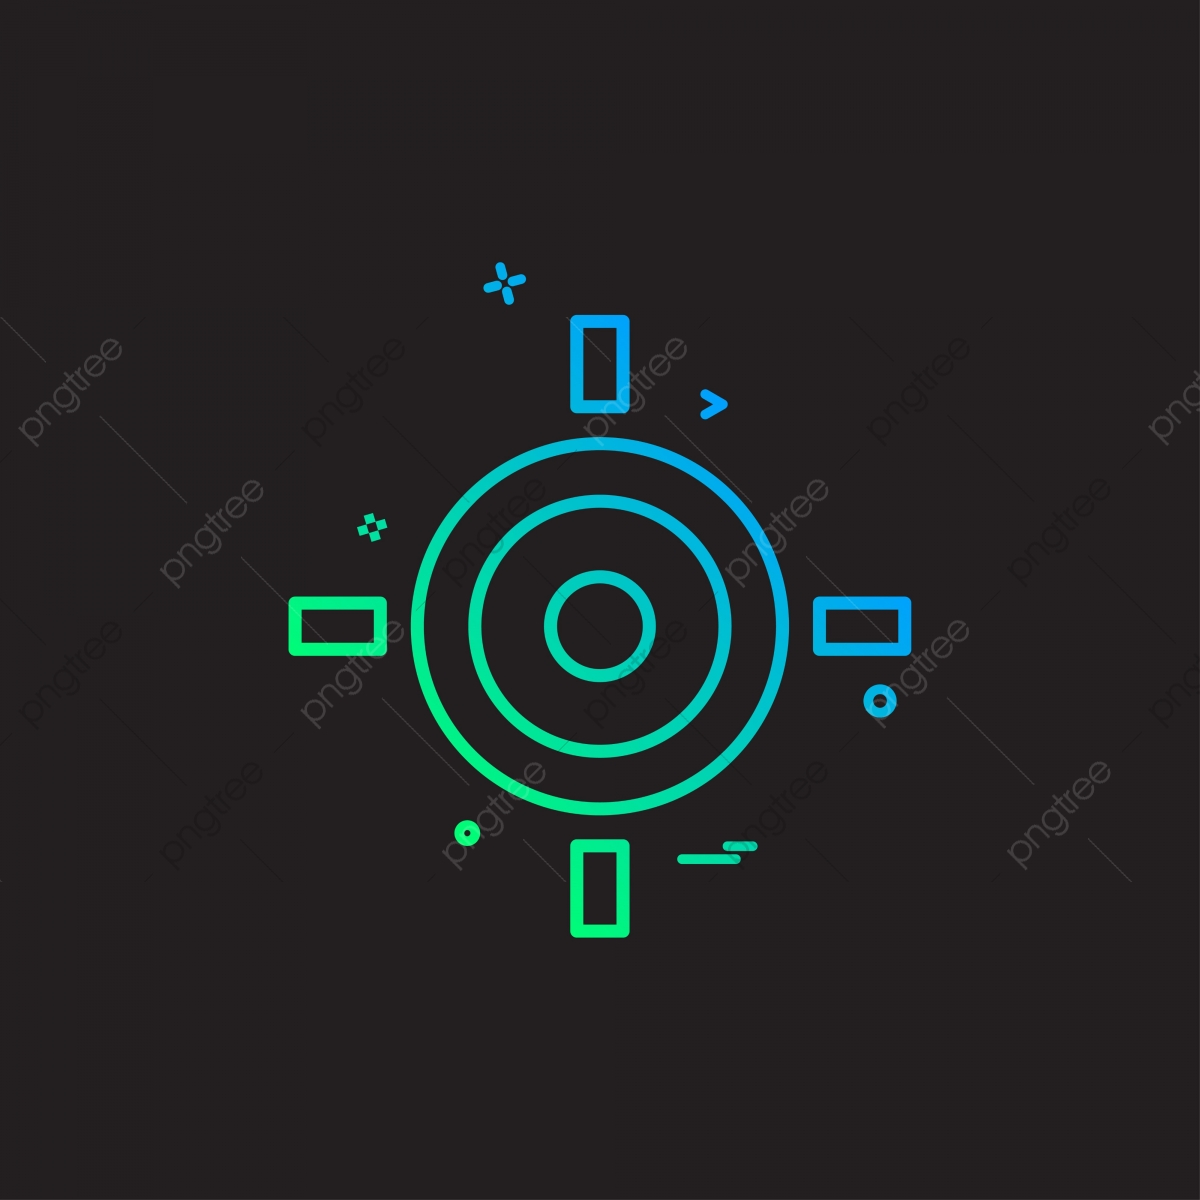 target aim goal icon vector design target icons goal icons aim icons png and vector with transparent background for free download https pngtree com freepng target aim goal icon vector design 3644234 html